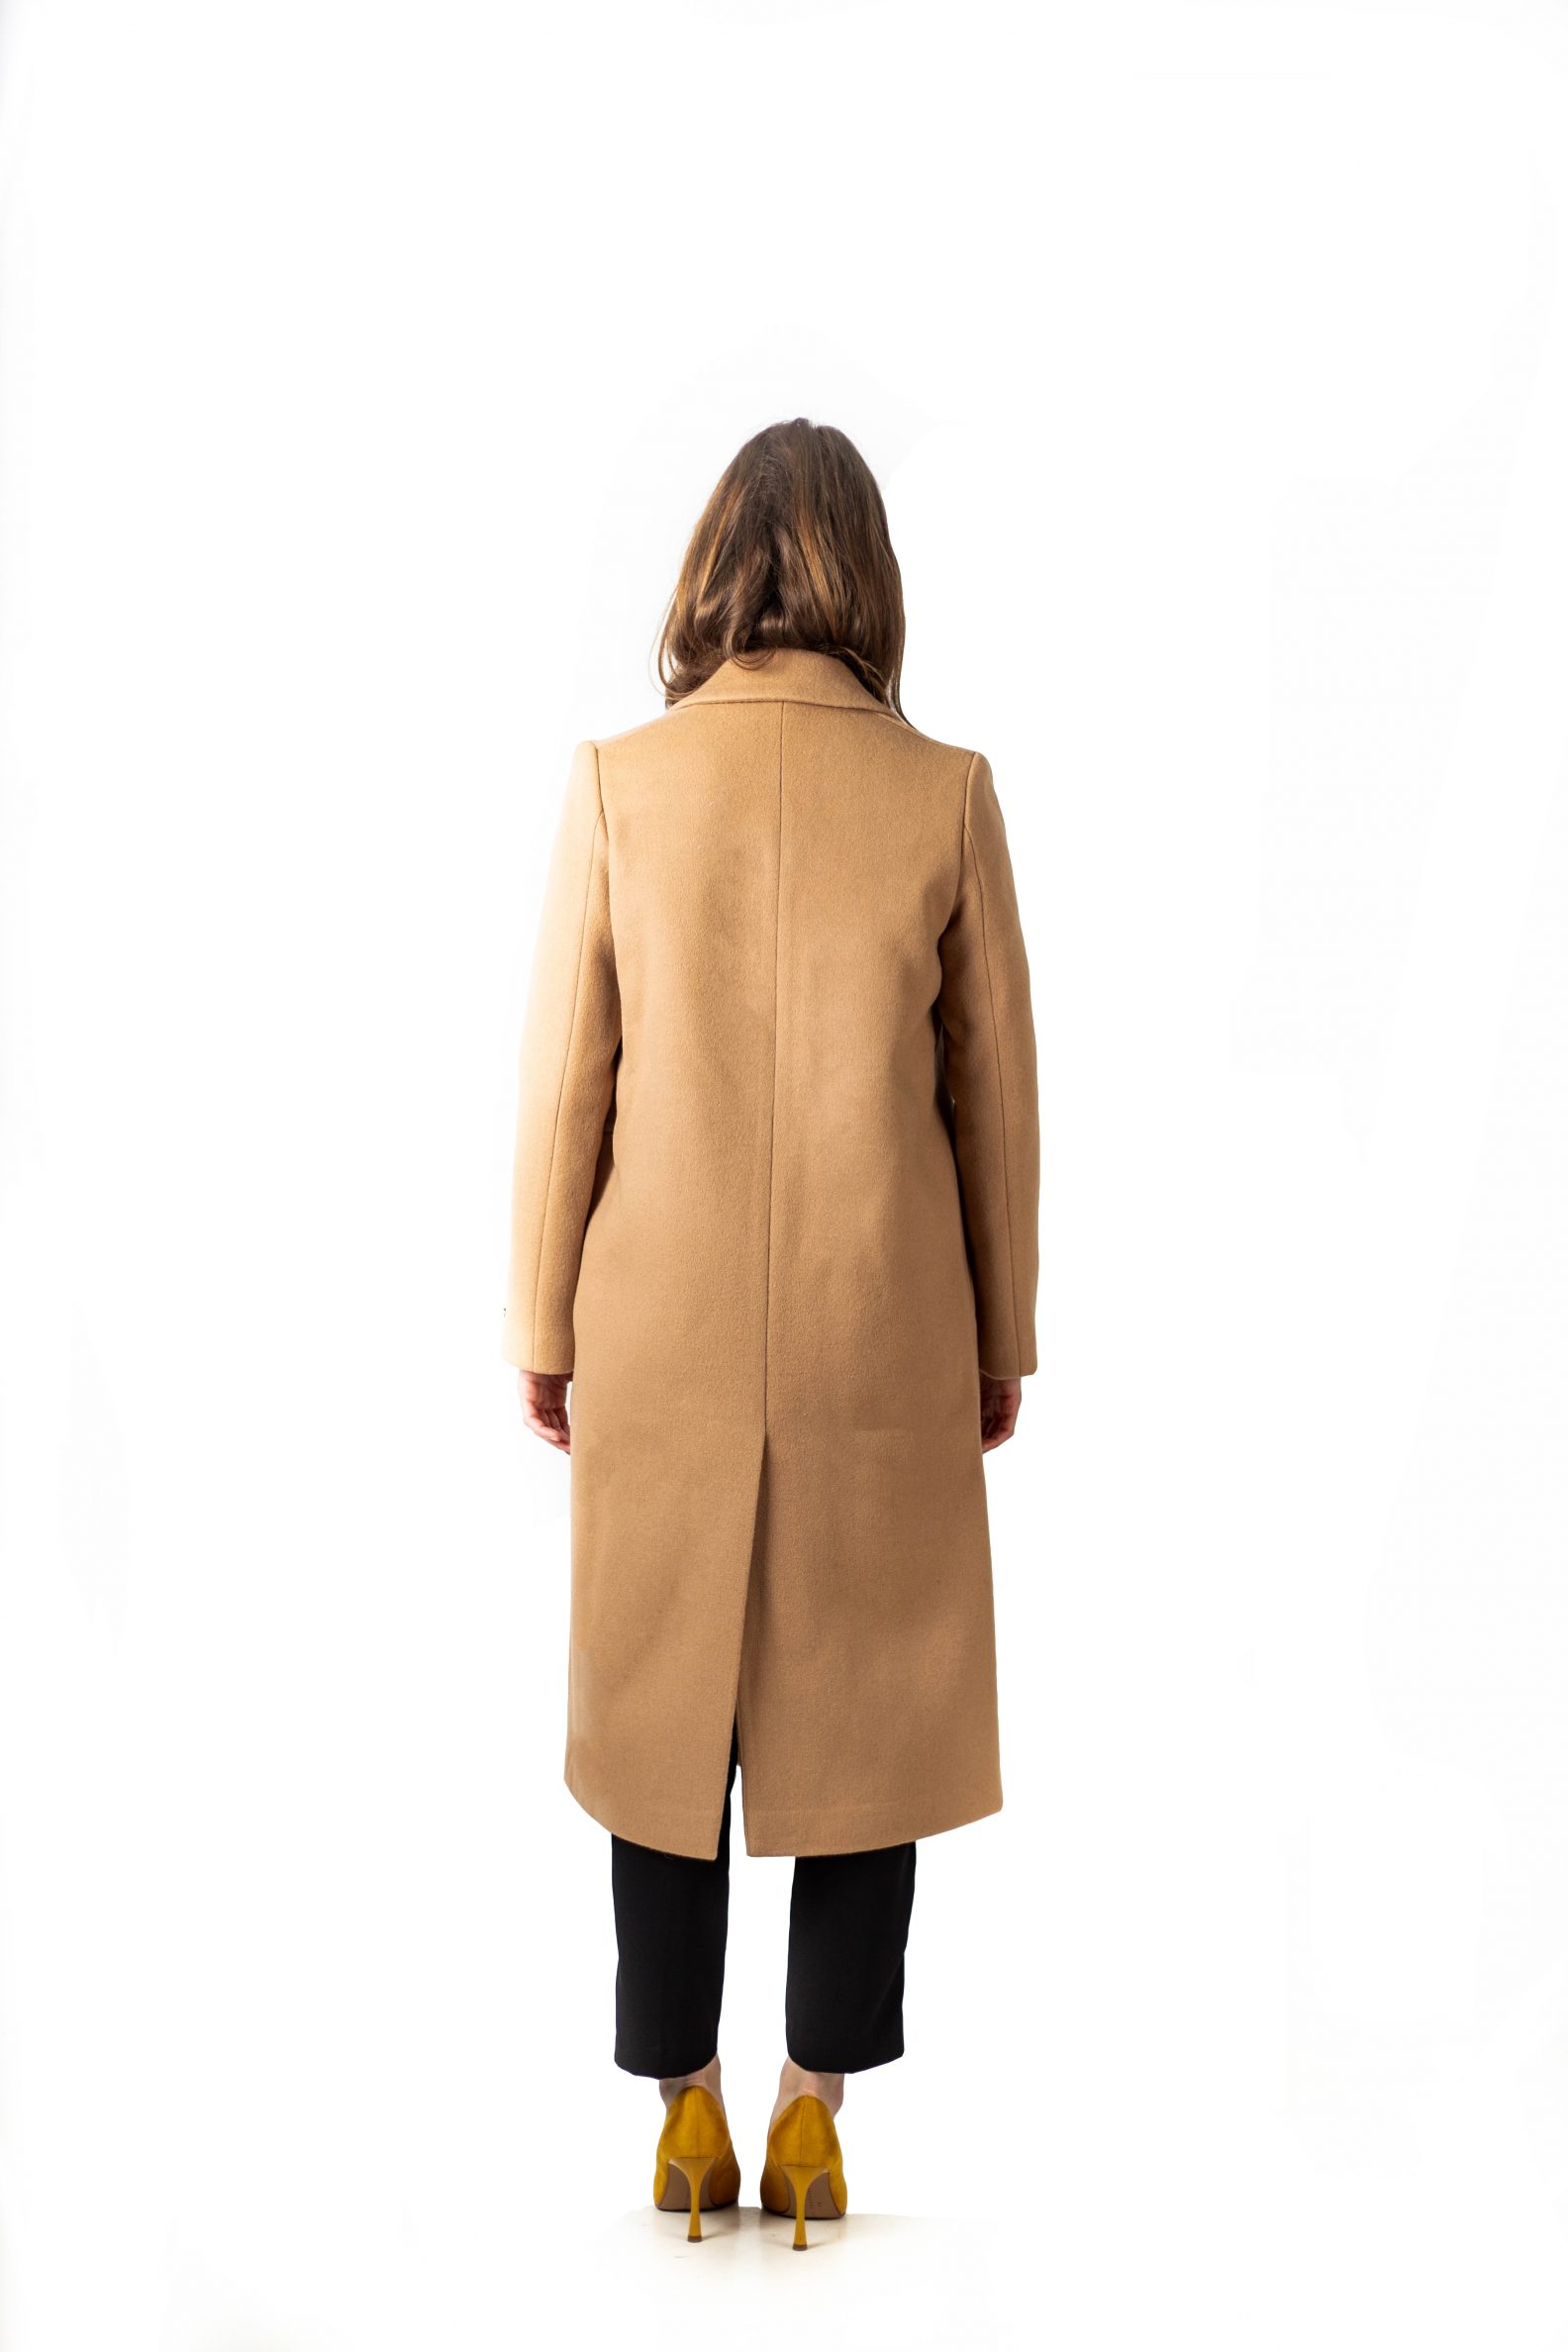 4-2-manteau-long-laine-affaires-etrangeres-paris-mode-coreenne-lookast